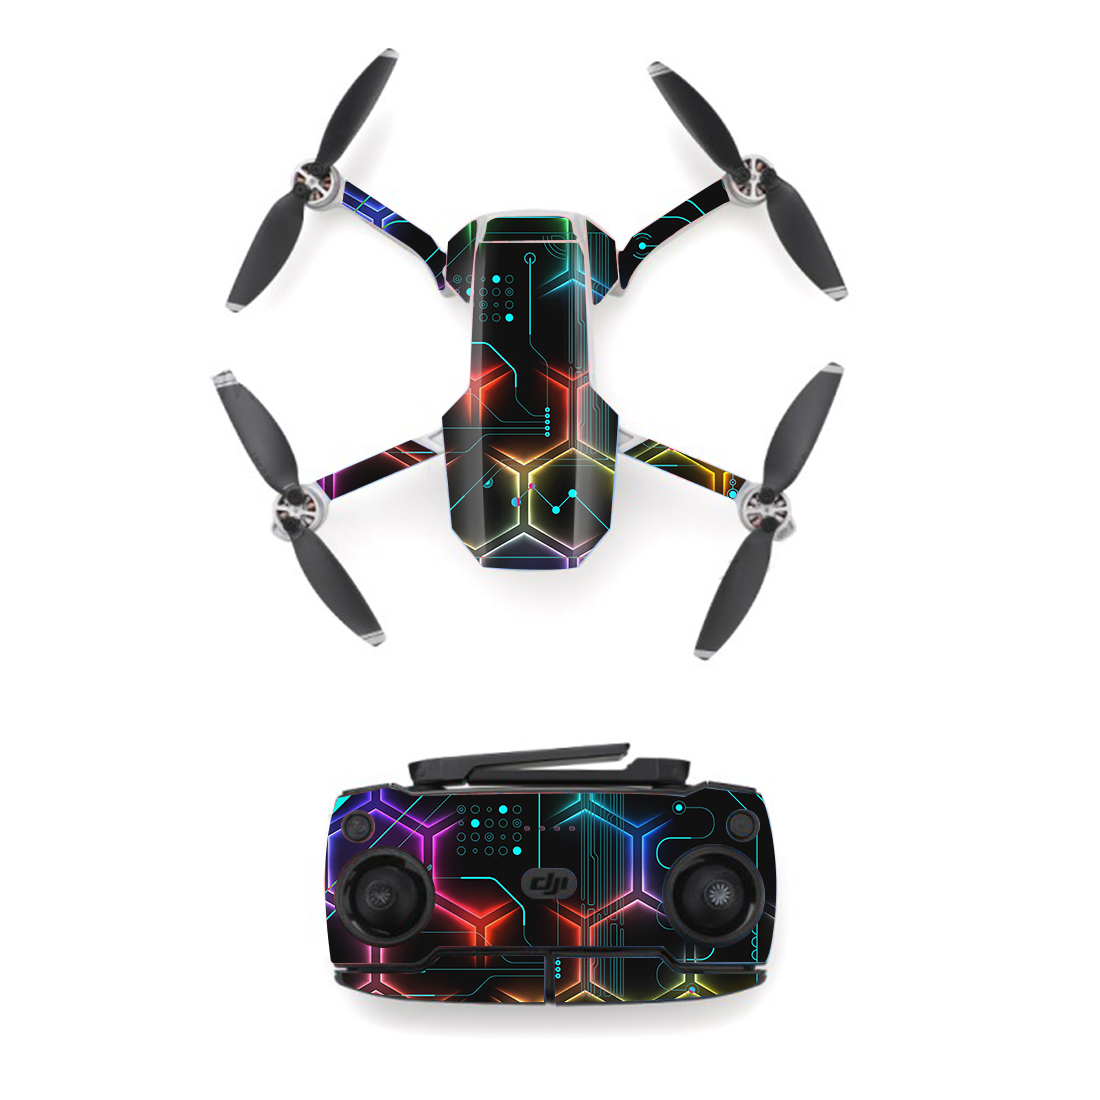 Colorful Line Style Skin Sticker For DJI Mavic Mini Drone And Remote Controller Decal Vinyl Skins Cover M0079